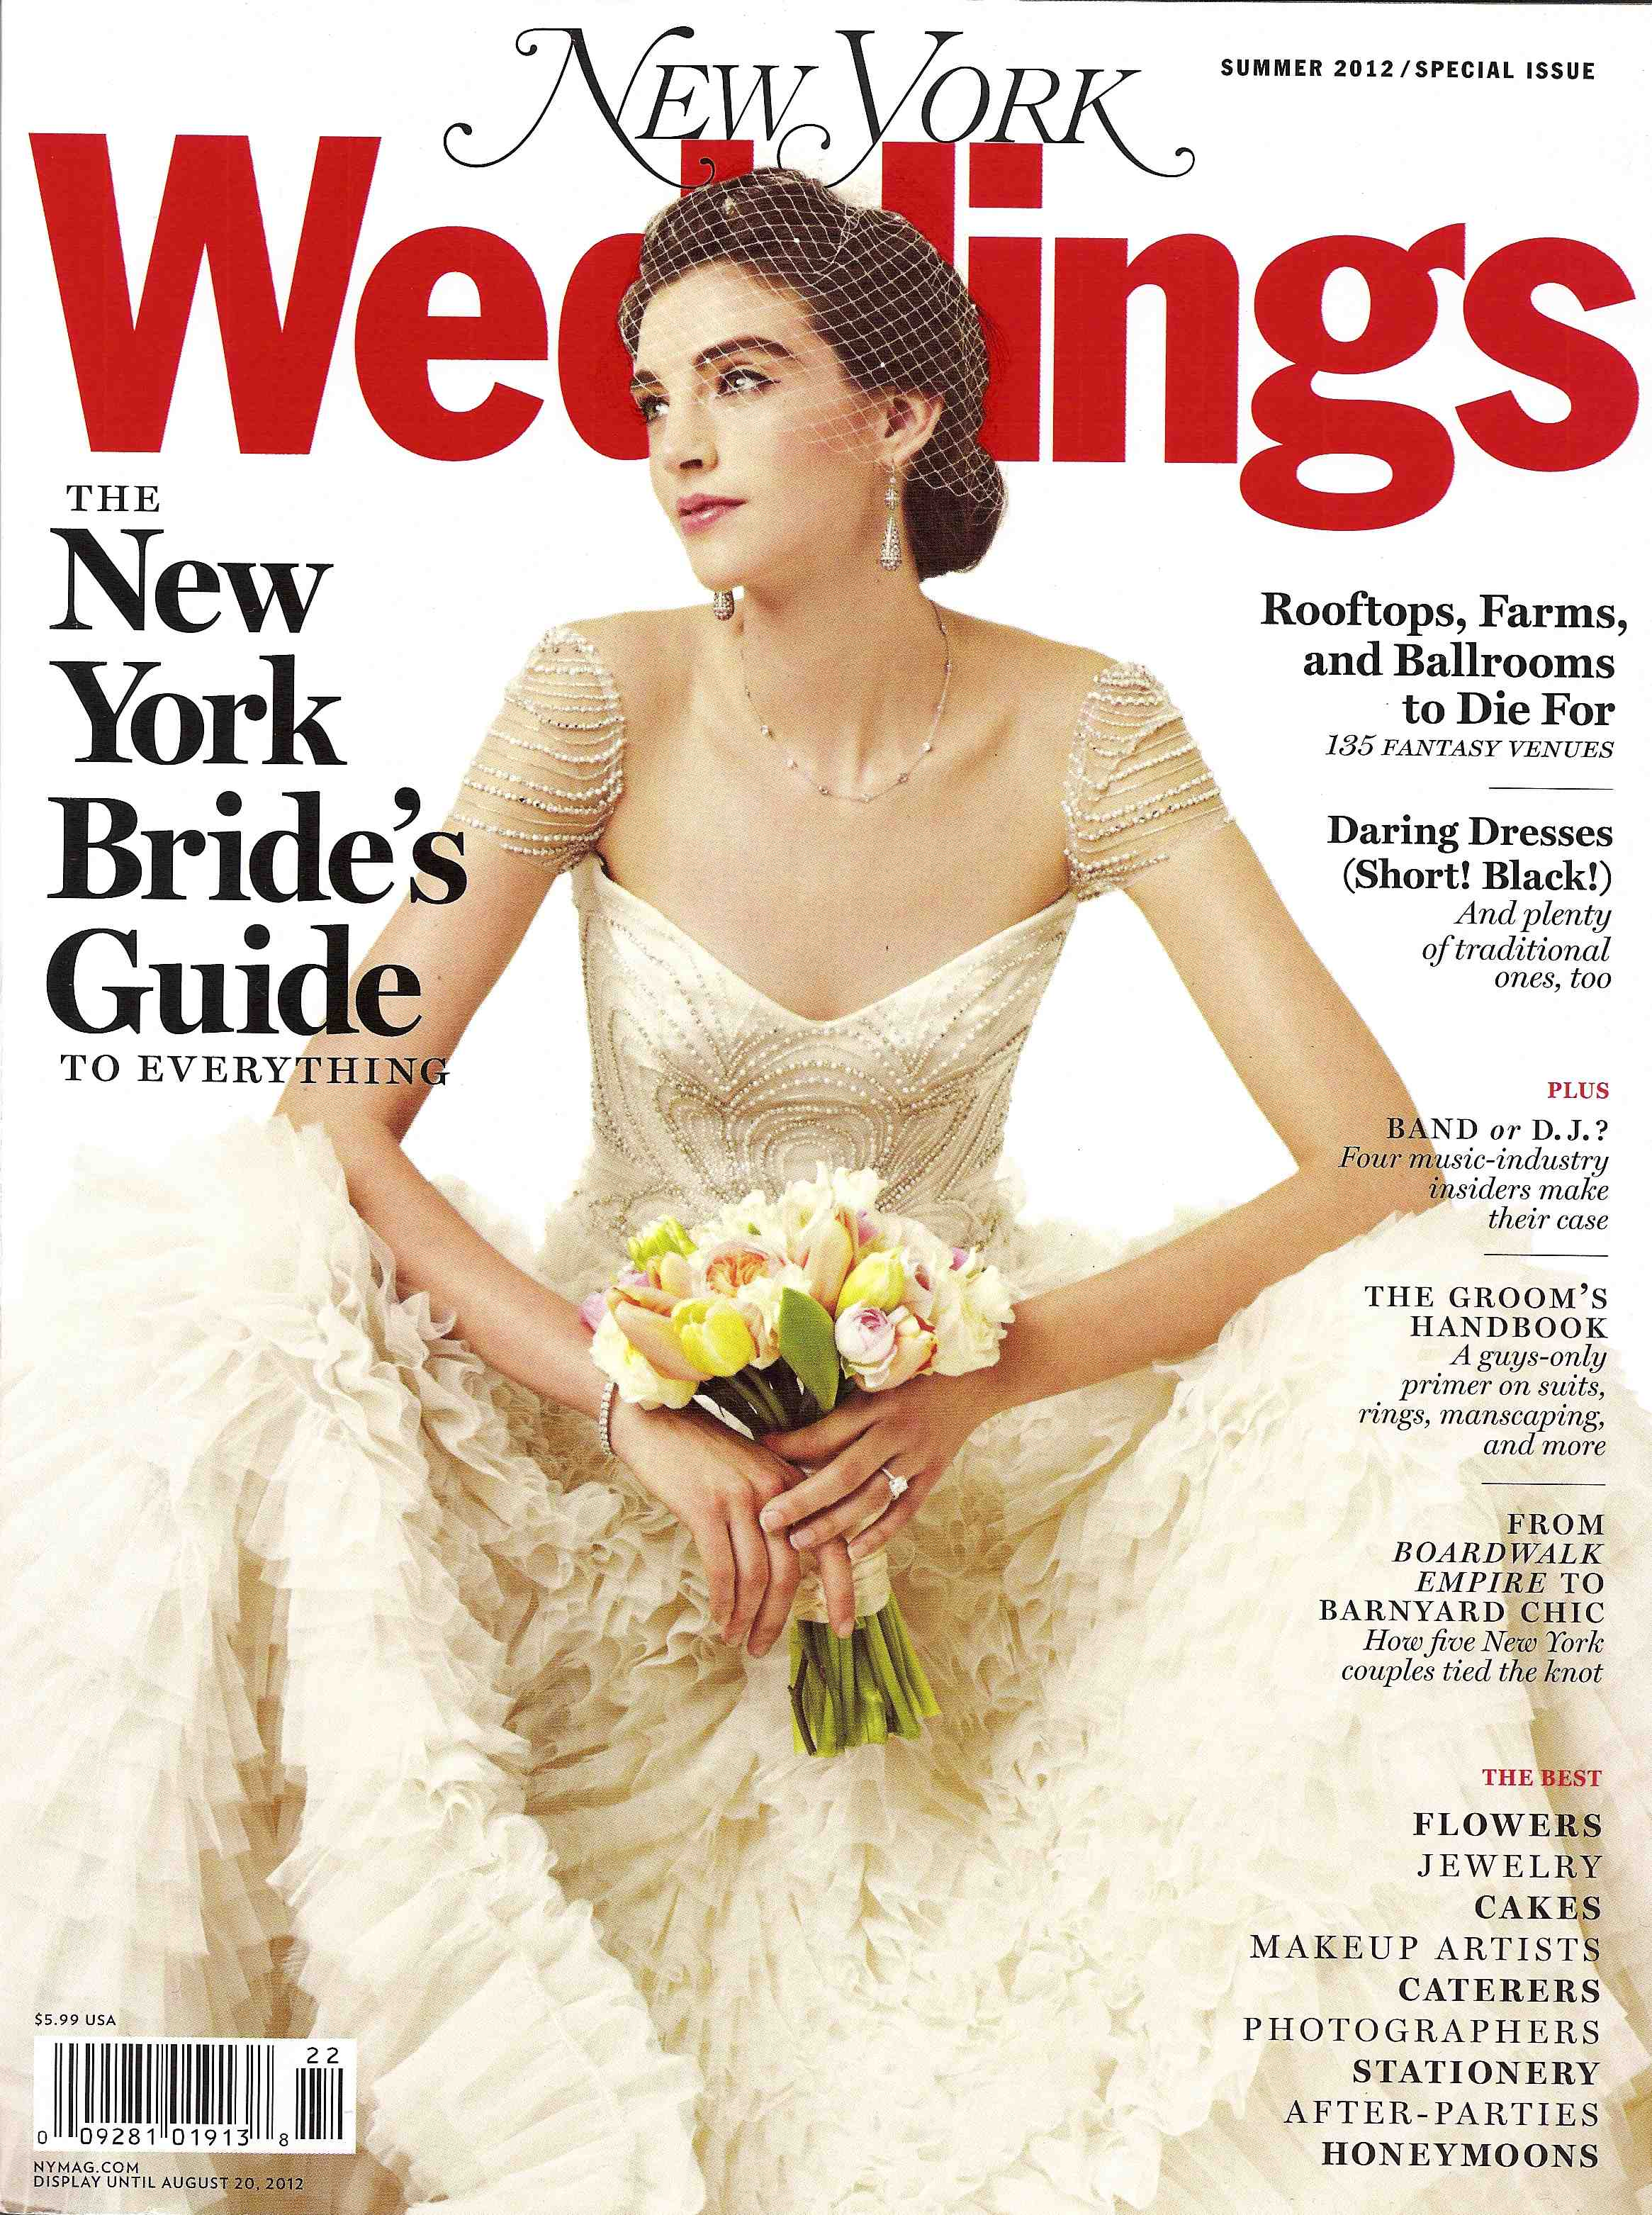 New York Weddings Cover 2012-1.jpg